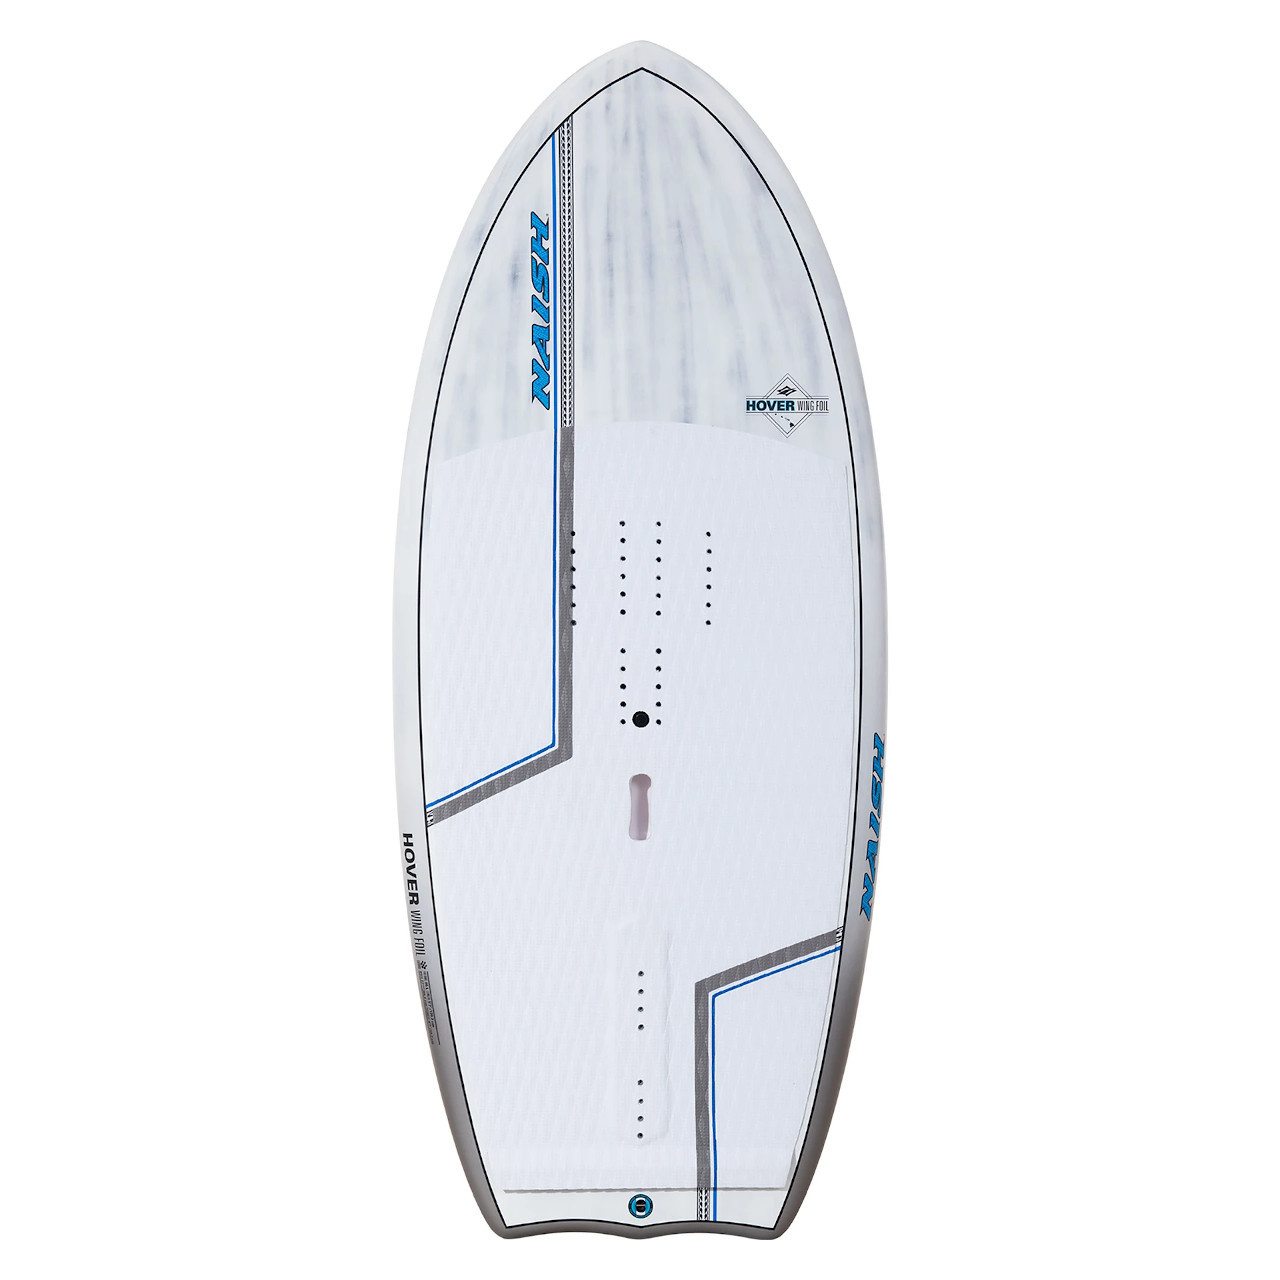 S26 Hover Wing Foil Carbon Ultra - Top Deck